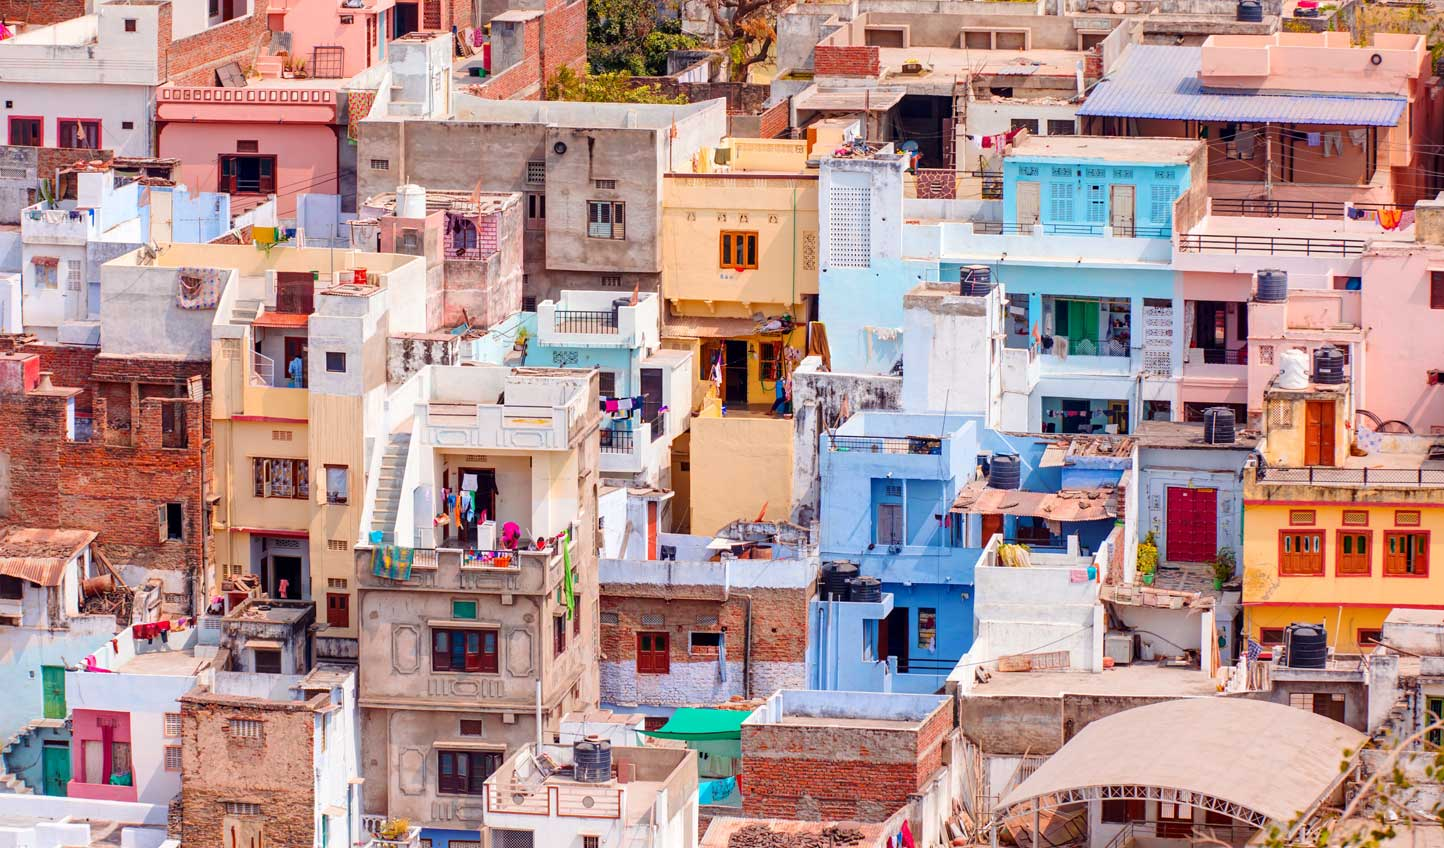 Swap the blues of Jodhpur for the pretty pastels of Udaipur